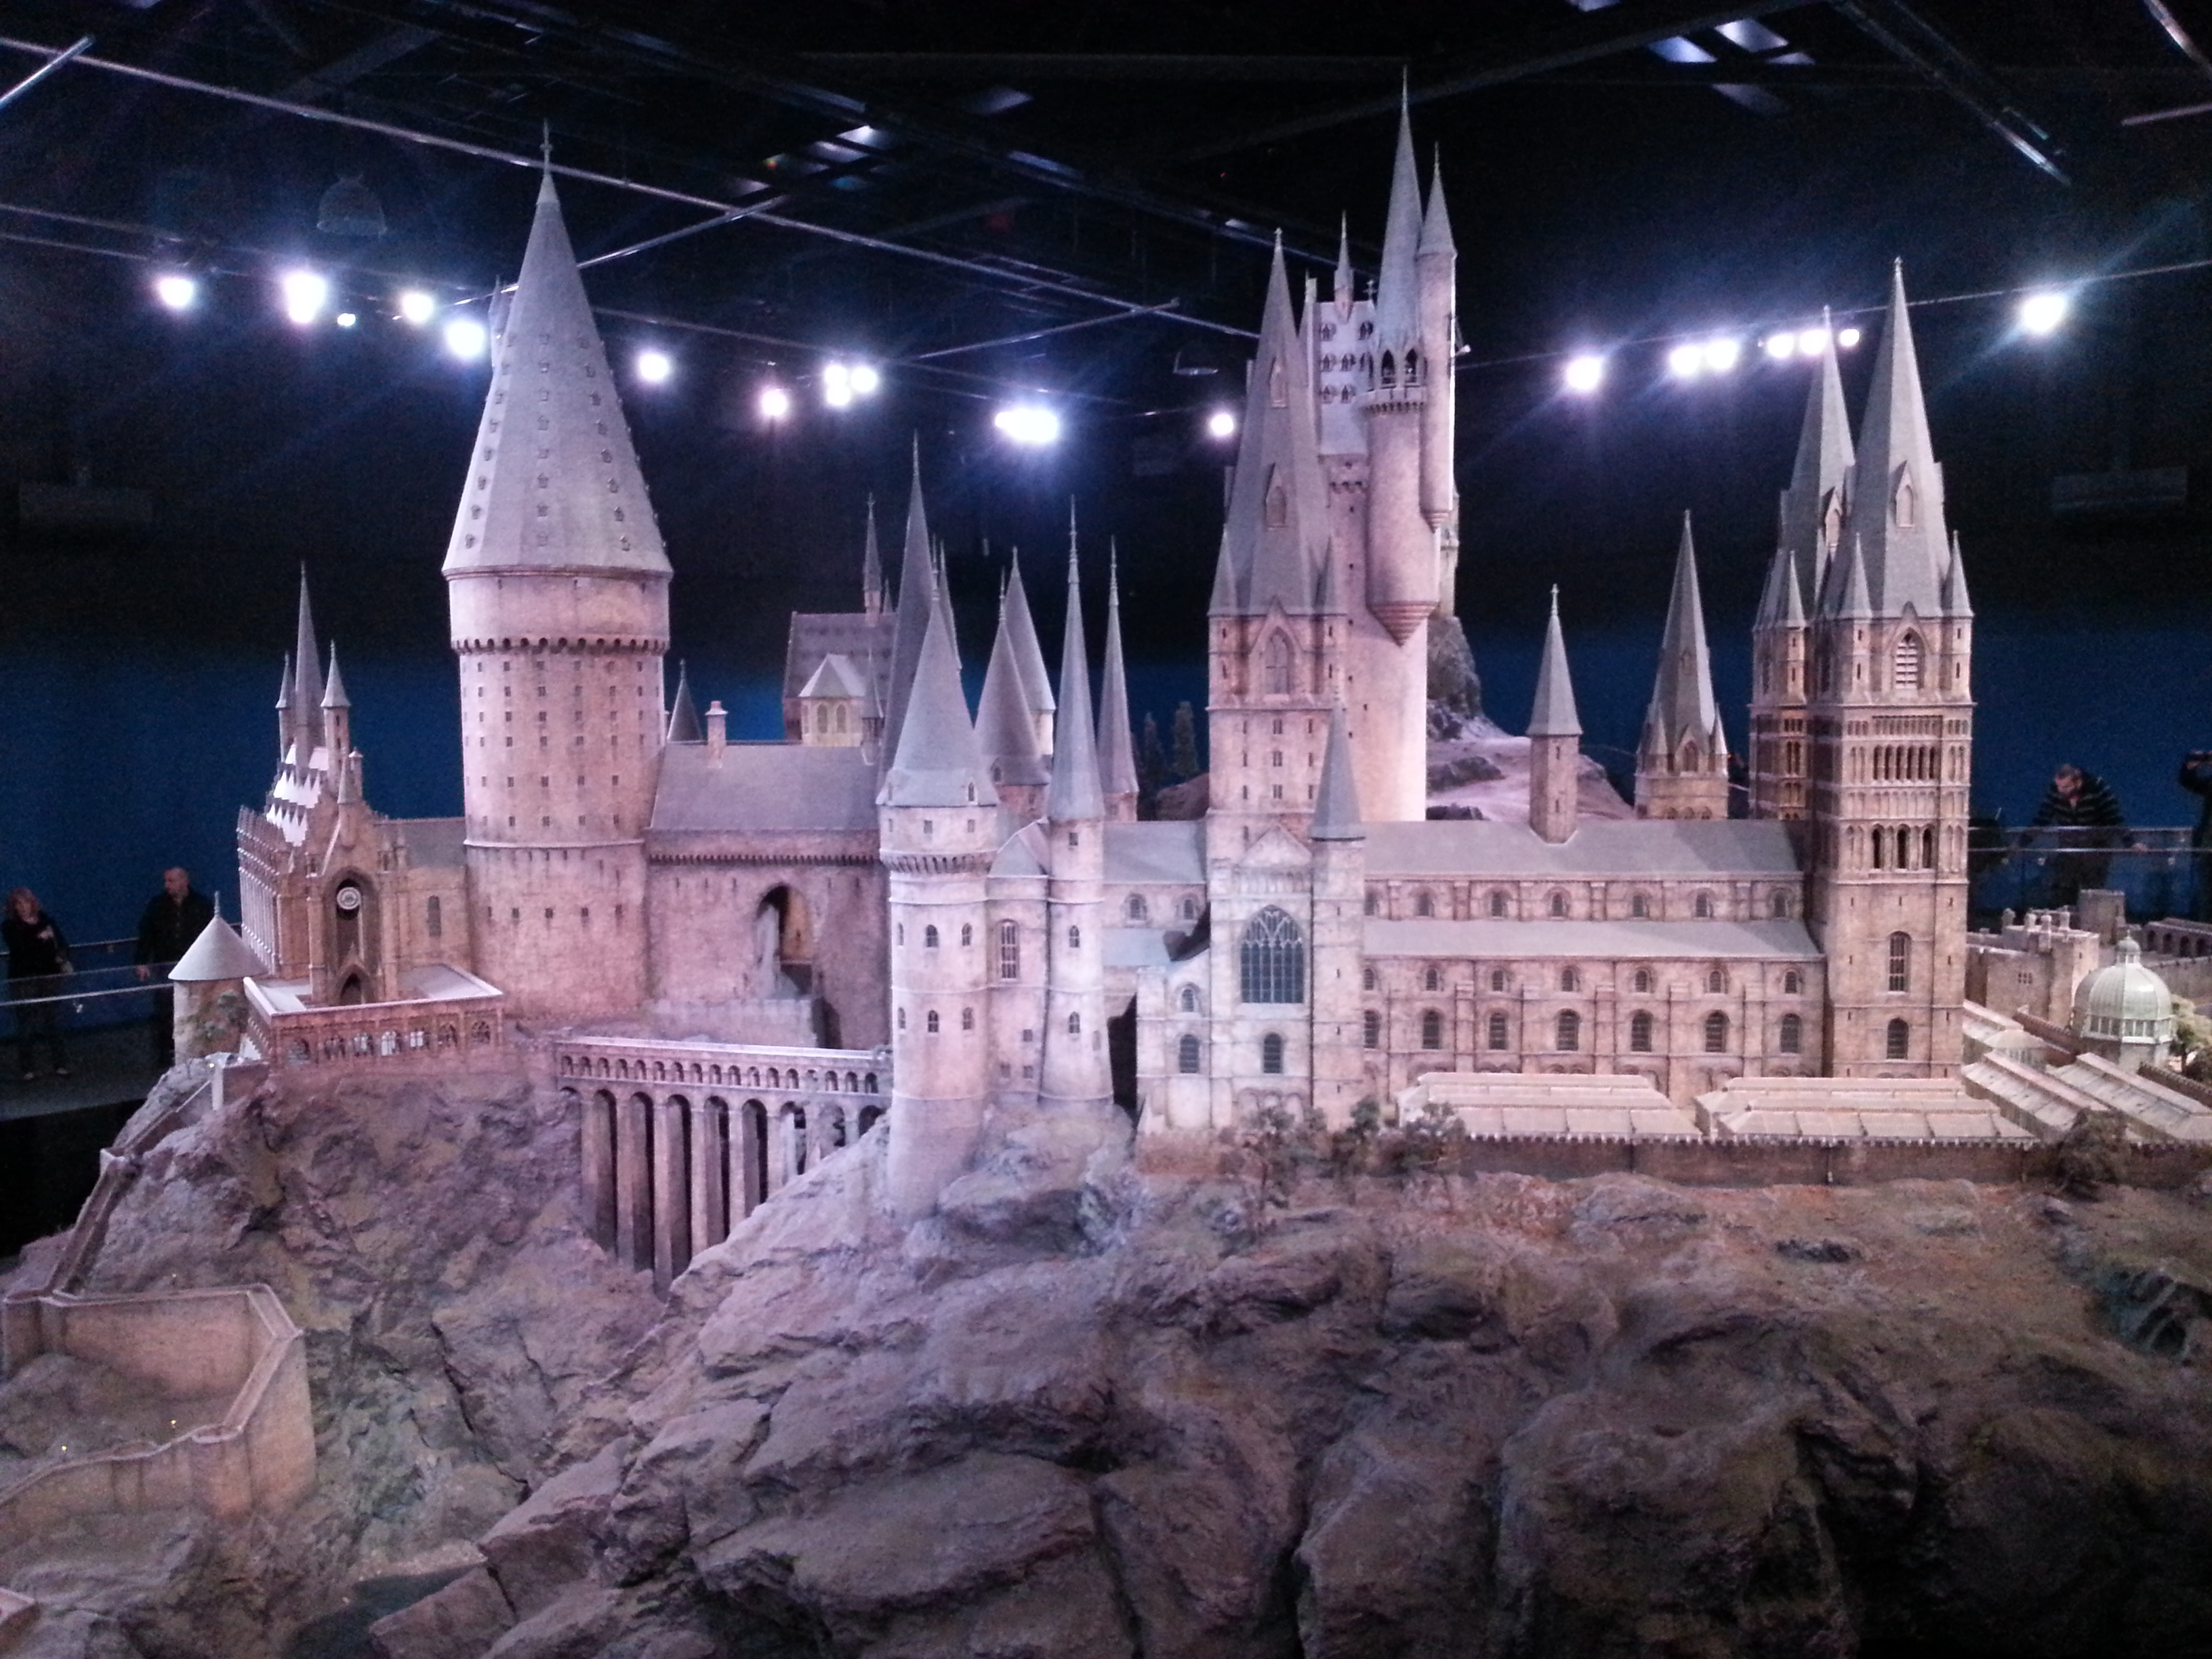 Model of Hogwarts that they used for filming. I didn't know this existed. Seeing it took my breath away.